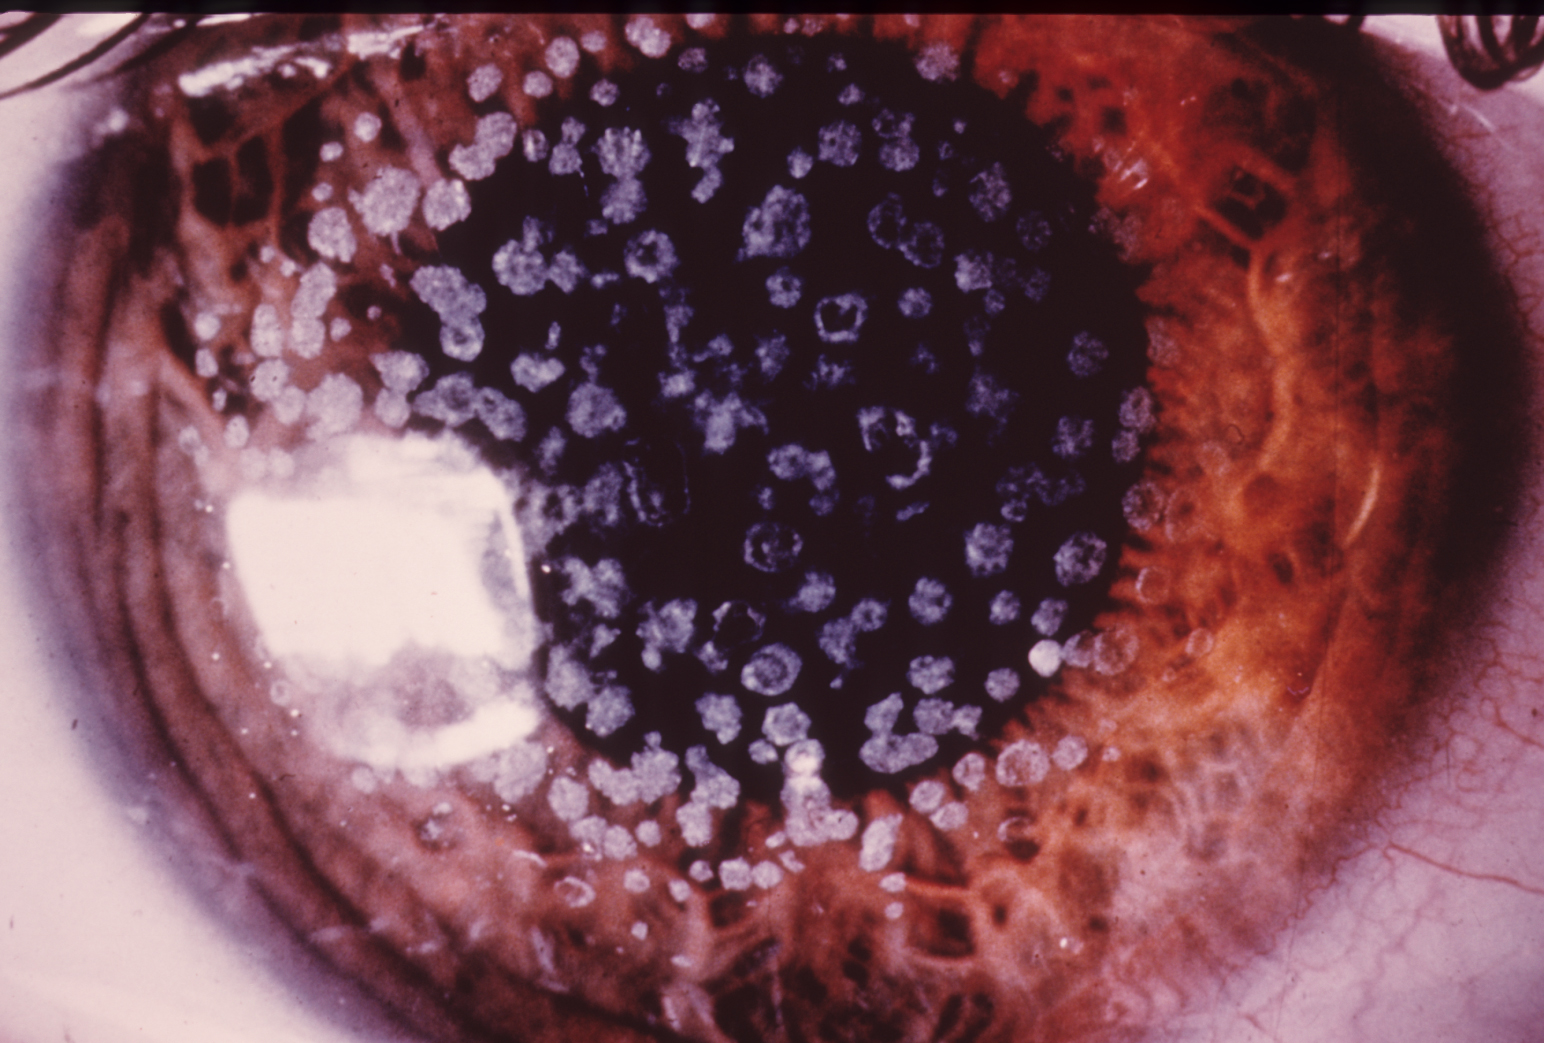 Granular dystrophy of the cornea